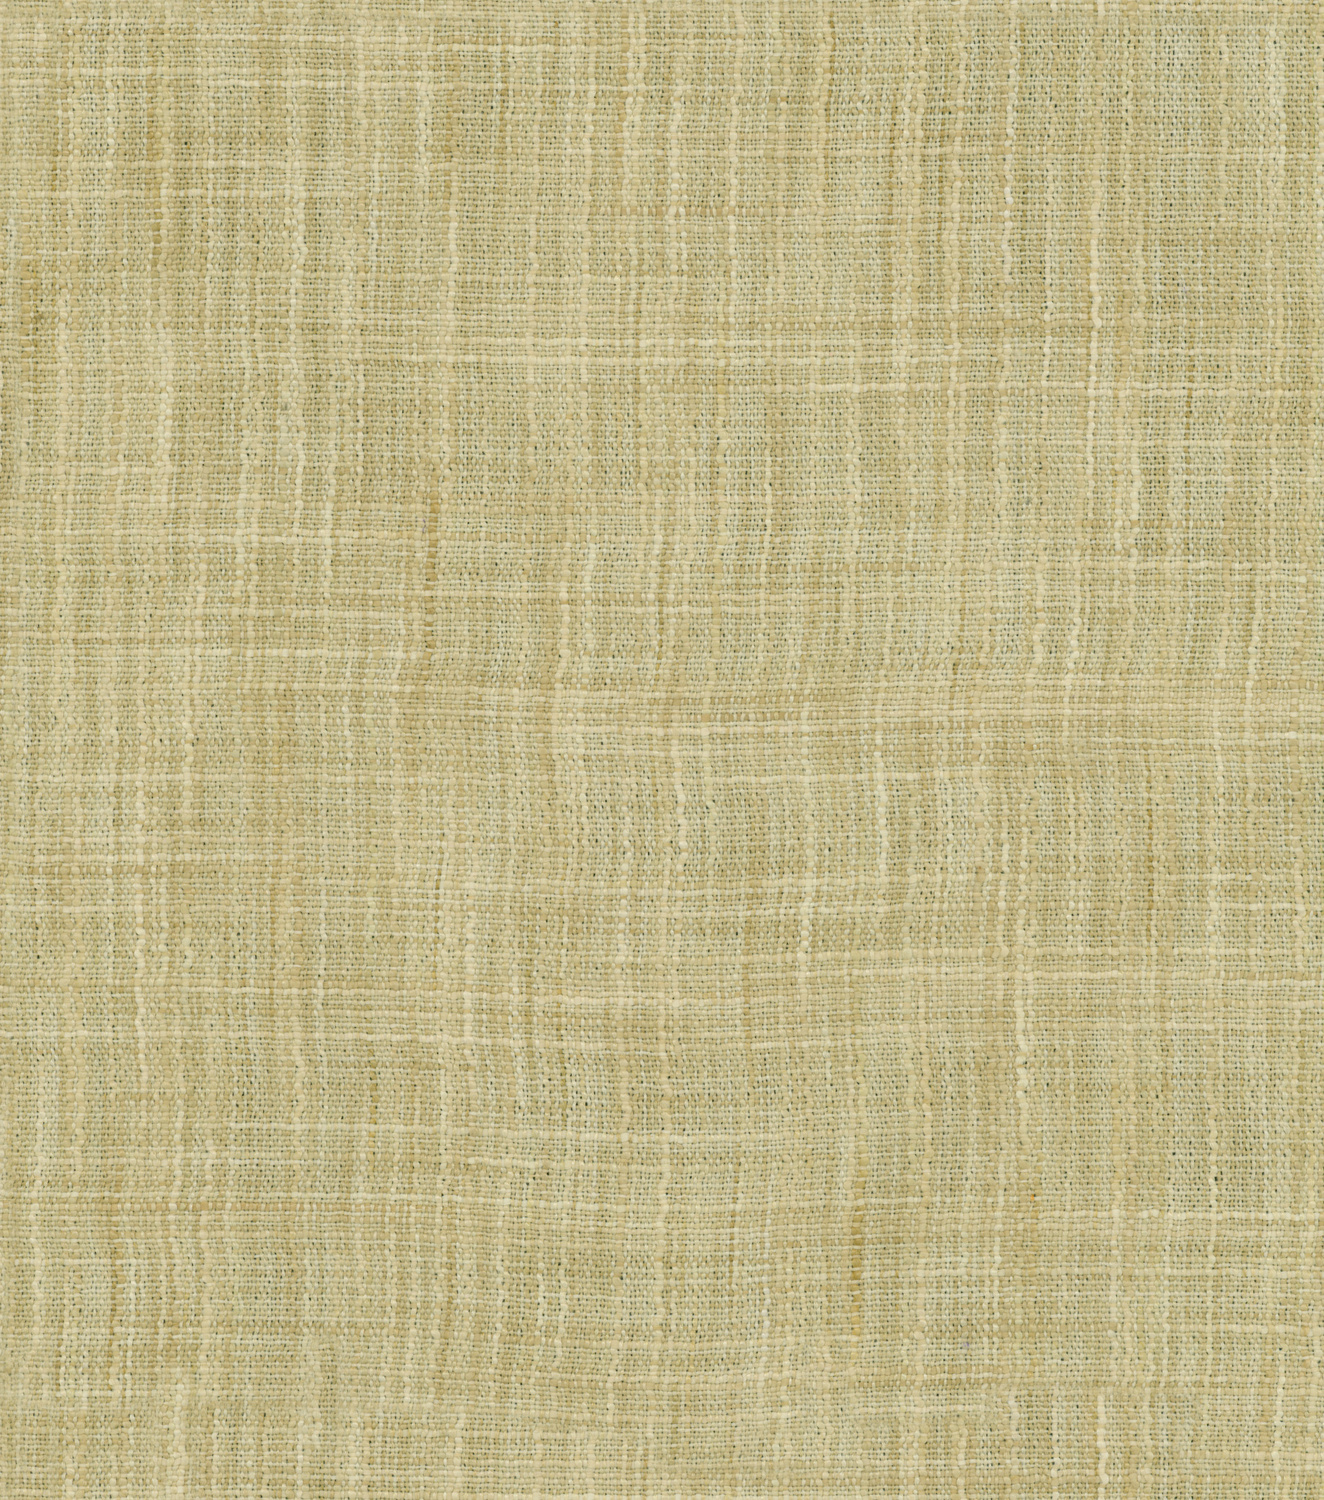 "Home Decor 8""x8"" Fabric Swatch-Braemore Bangkok Hemp"